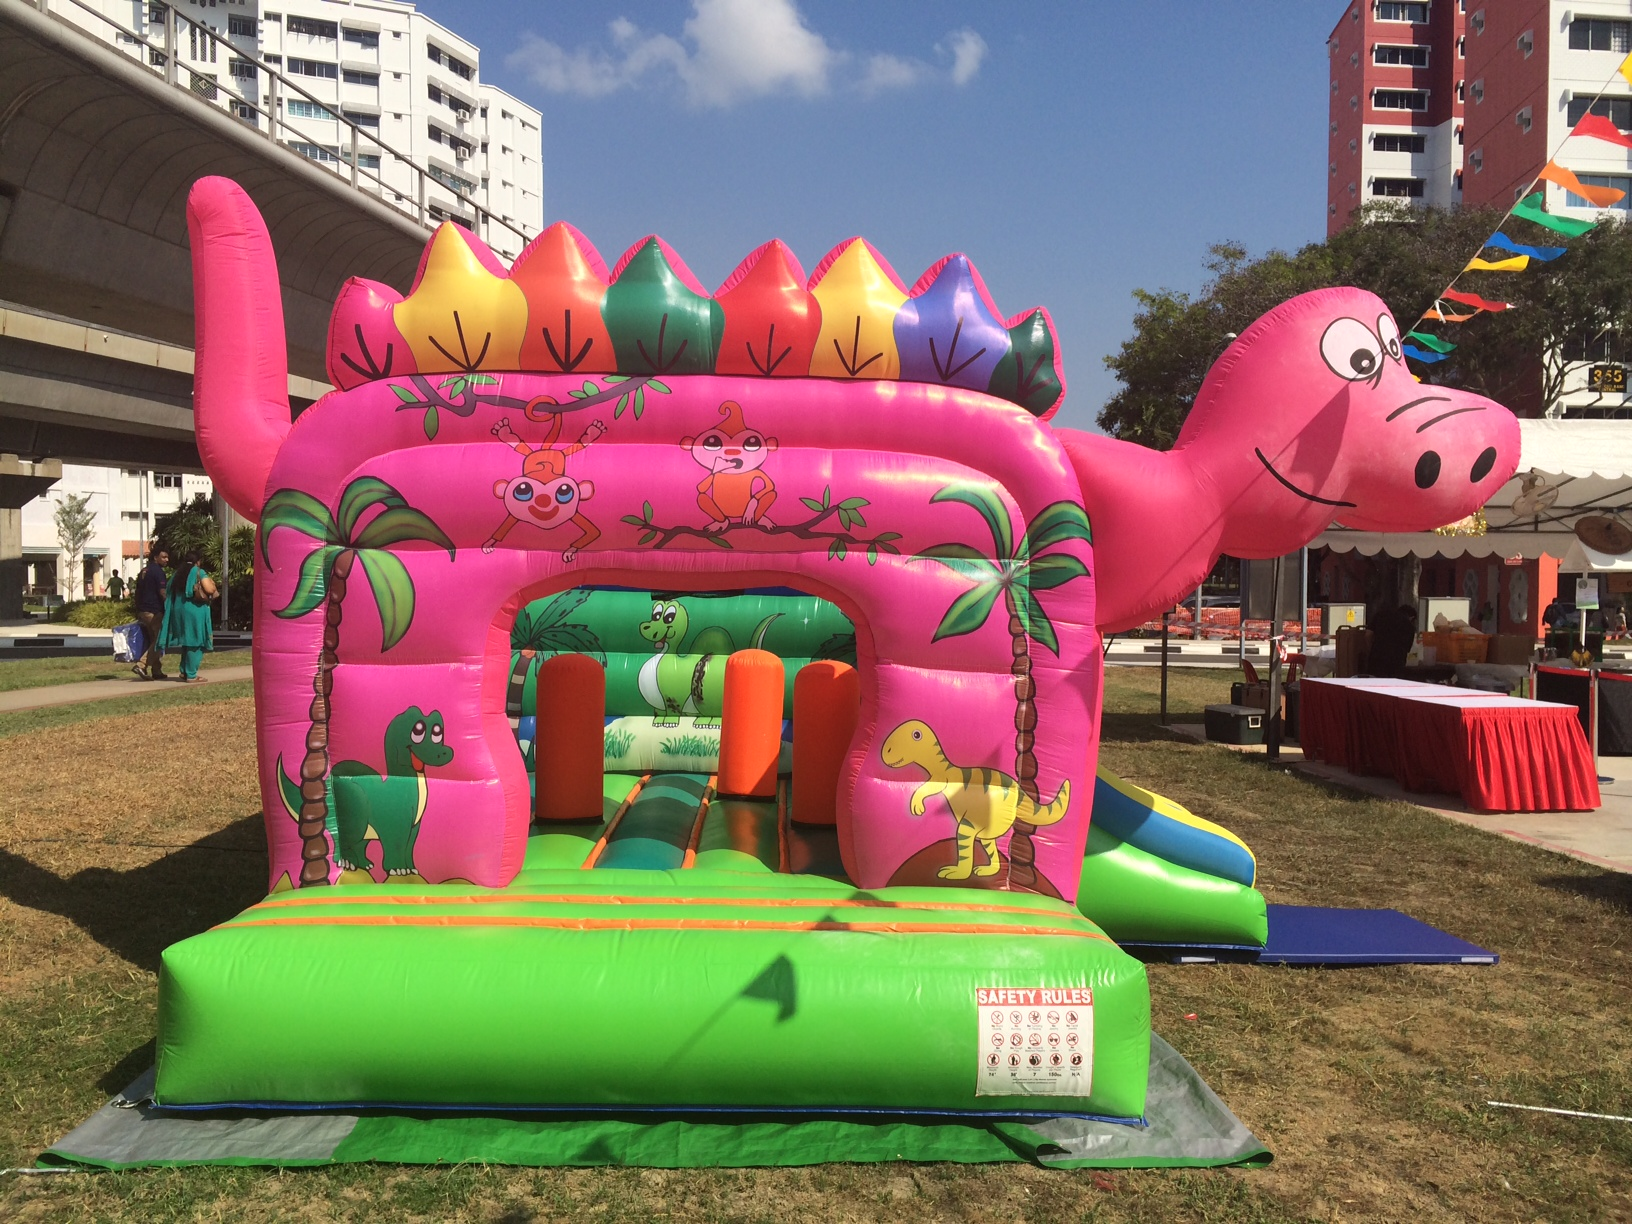 $480 - Dimension: 5m x 4m x 3m (H) - Up to 10 Children - Rates for 4 hours session